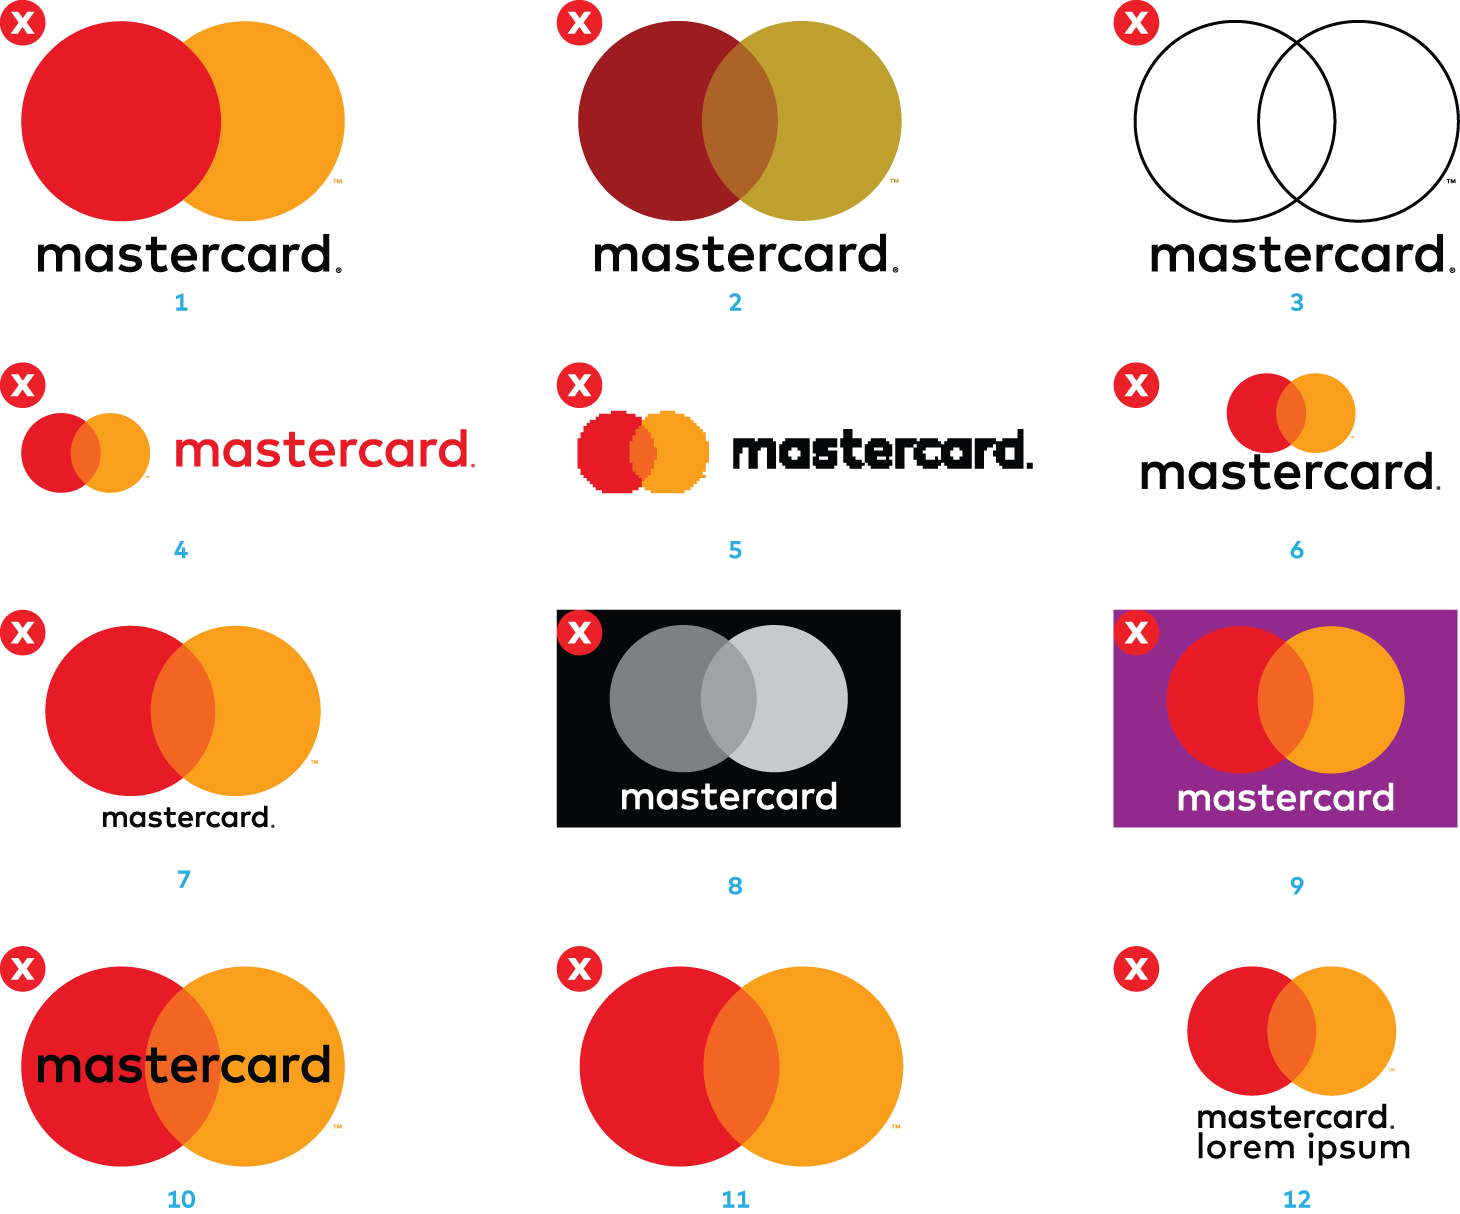 Images of incorrect uses of the Mastercard logo